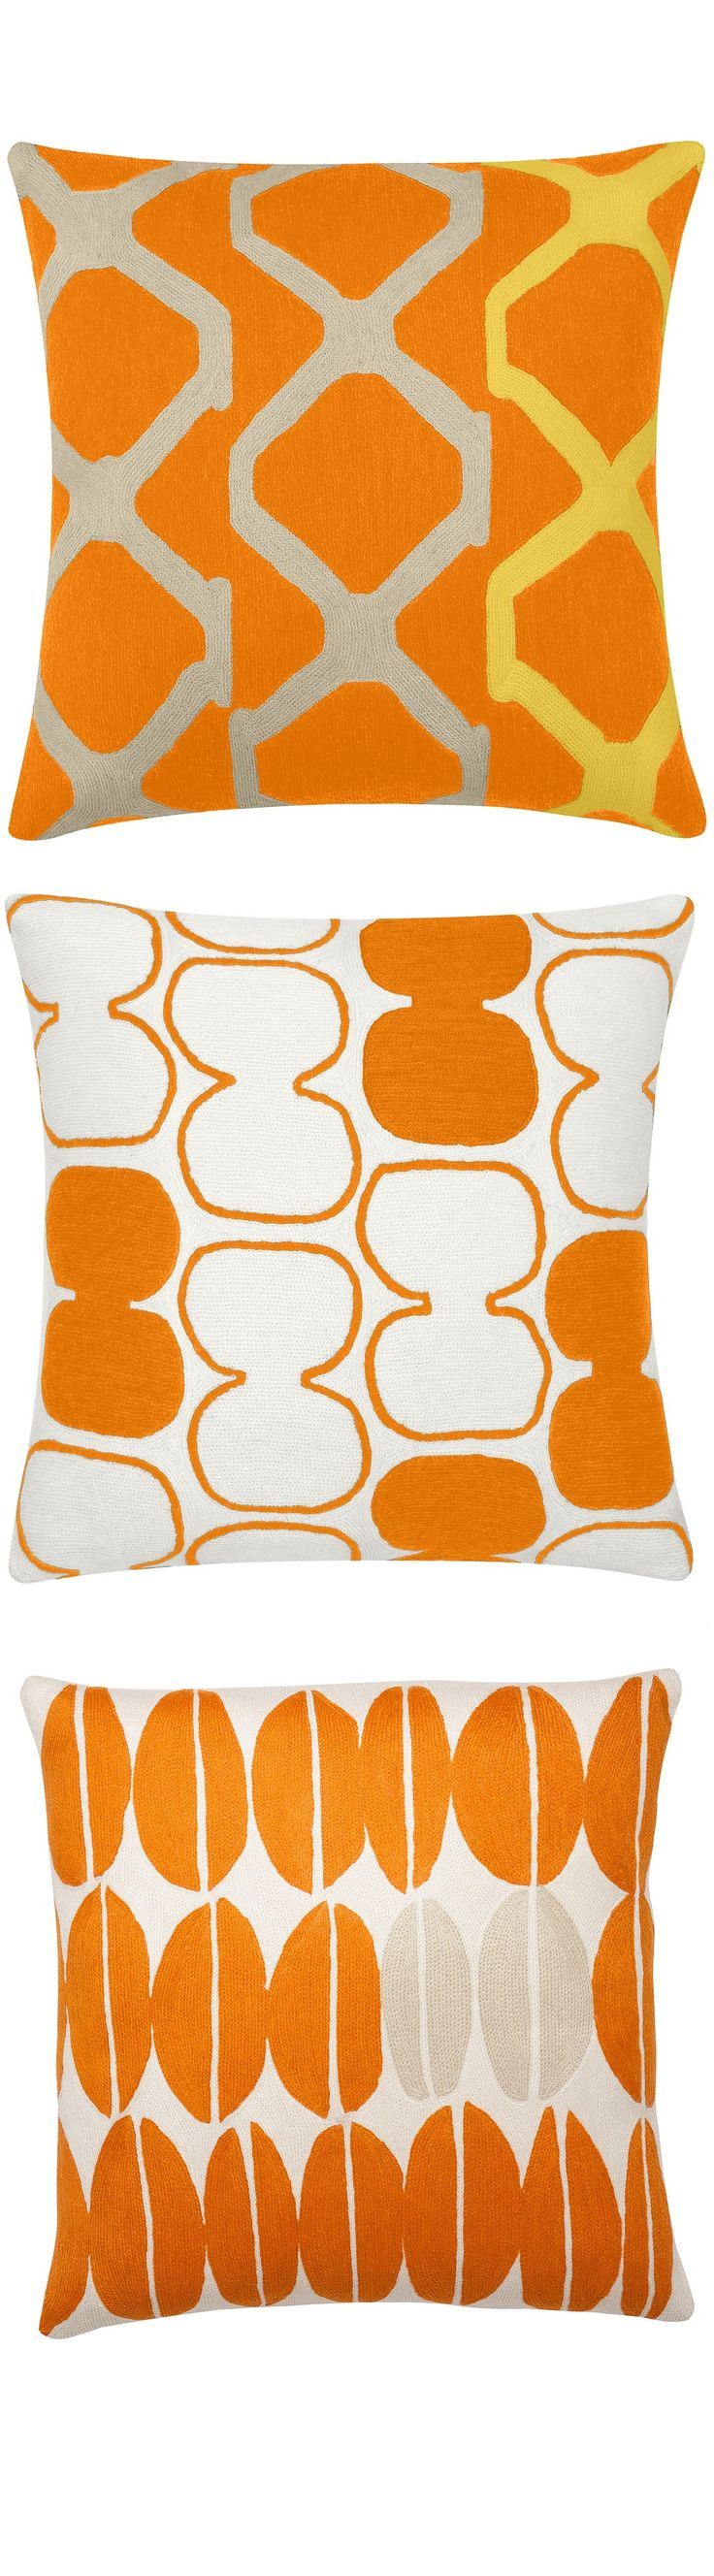 best  contemporary pillow cases ideas on pinterest  - orange pillows orange throw pillows orange modern pillows by instyle